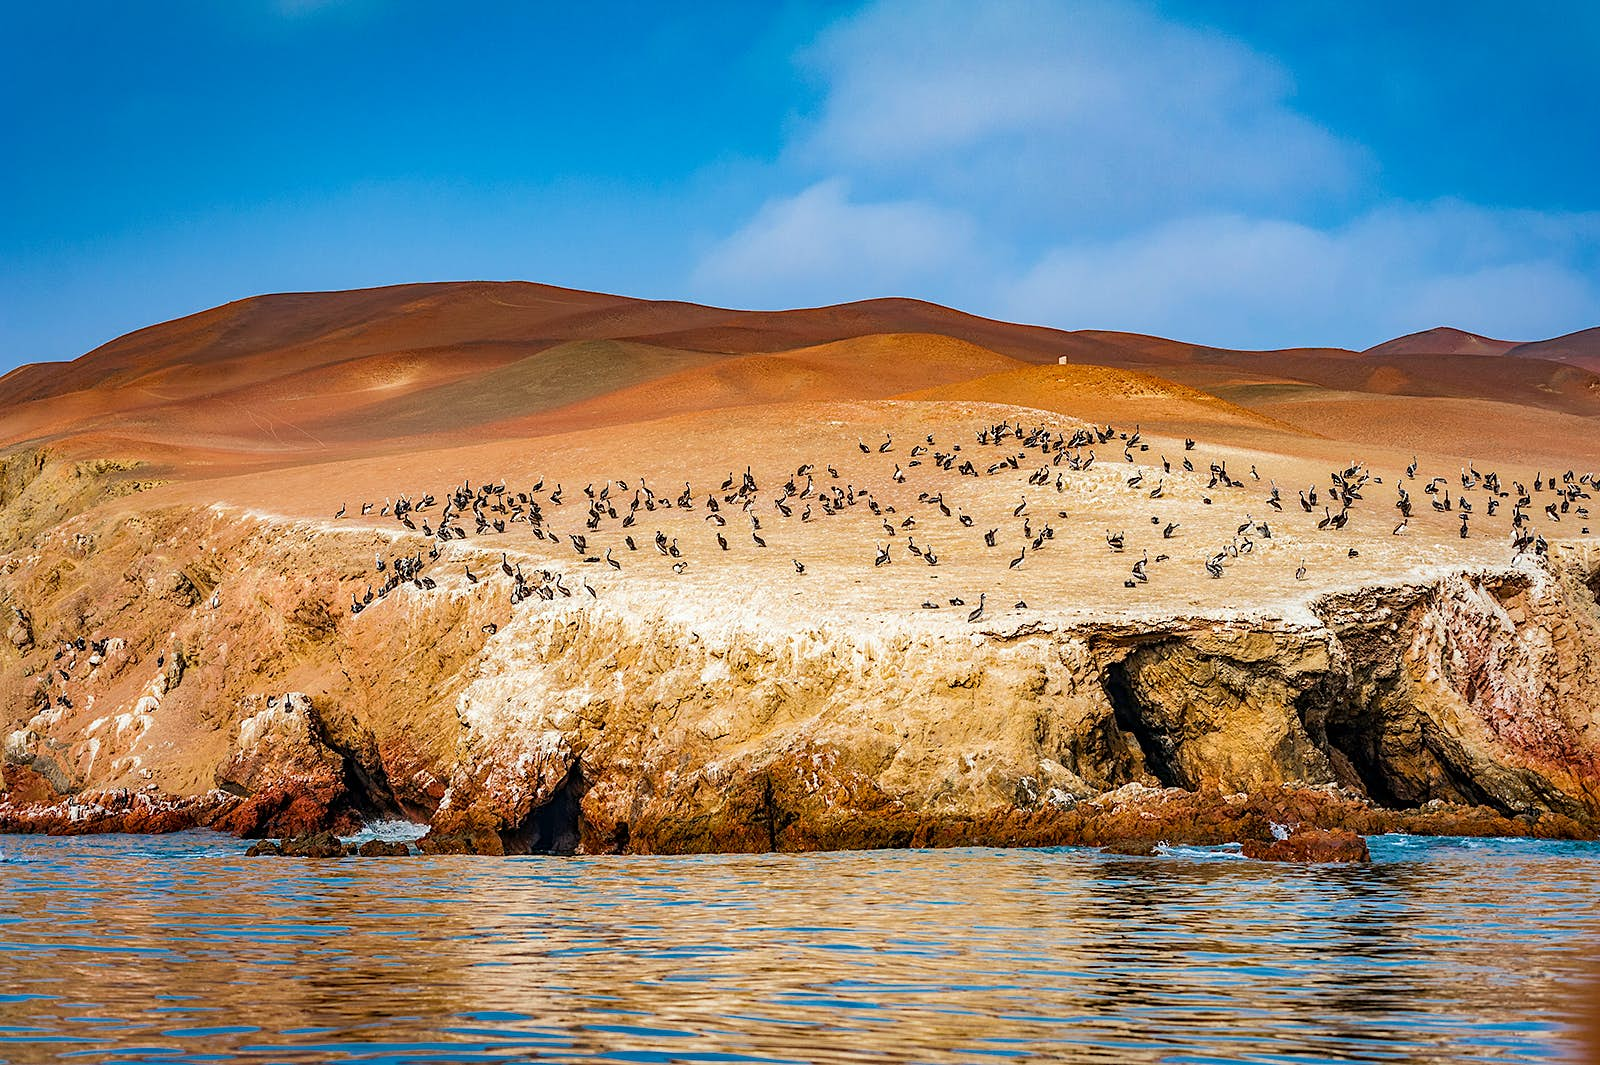 A photo from the water looking at a rust colored, desert coastline dotted with birds. The landmass is framed by a blue sky and rippling water.